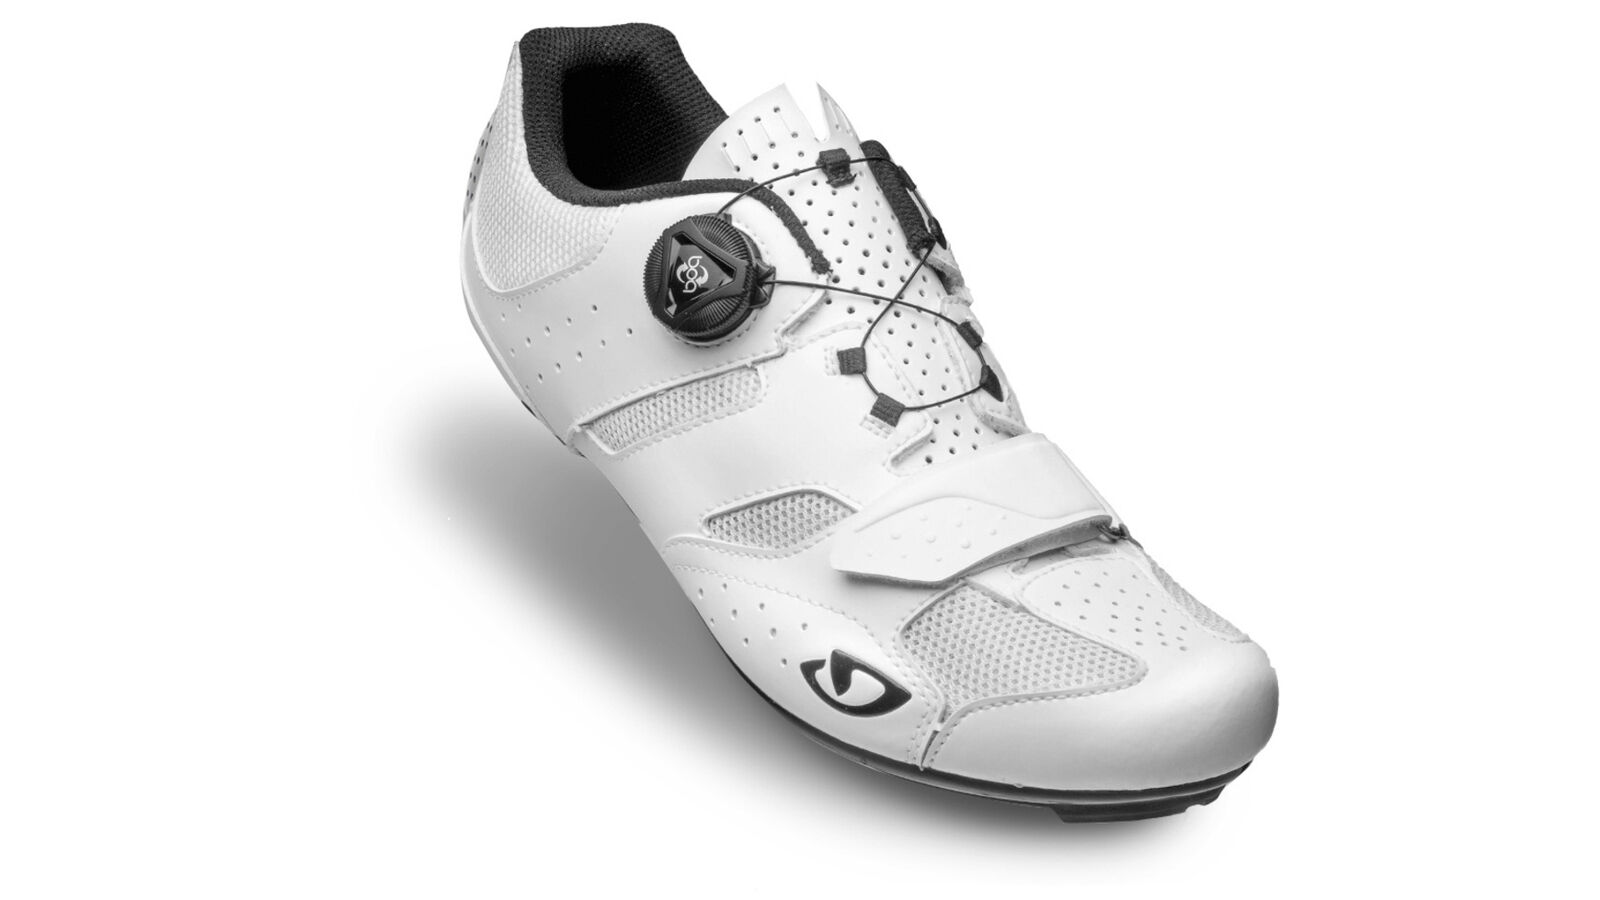 Giro  bike shoes synthetic smooth white savix Cleat-Befestigung  perfect